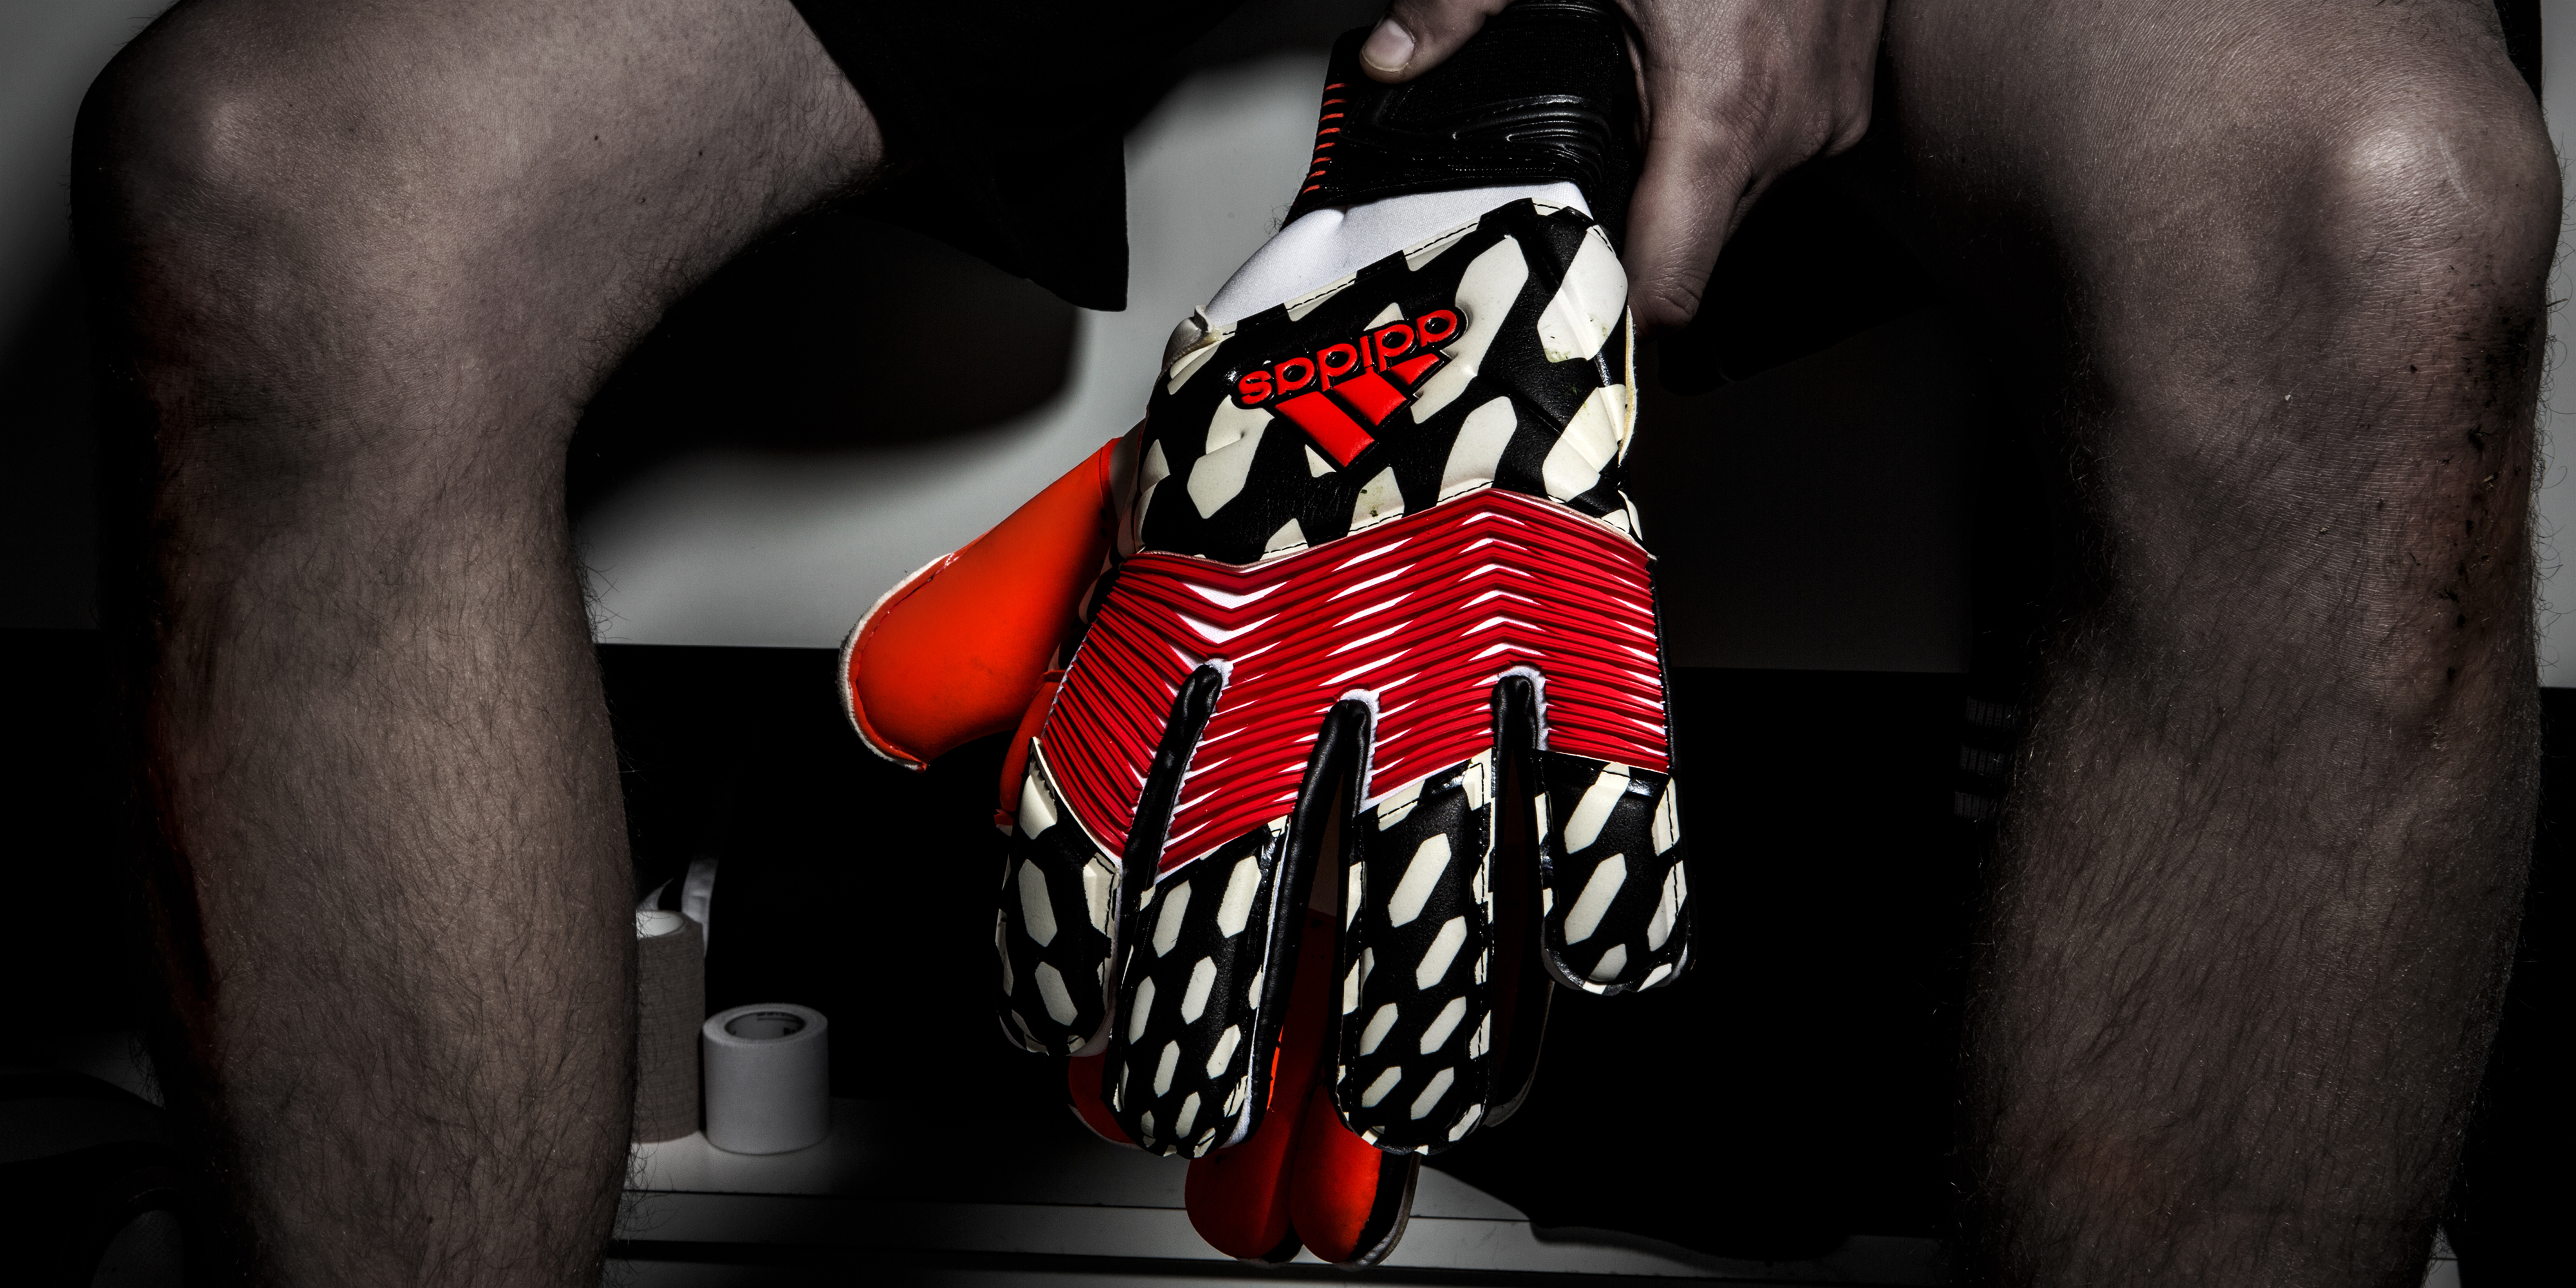 iker casillas gloves 2014 need from their gloves